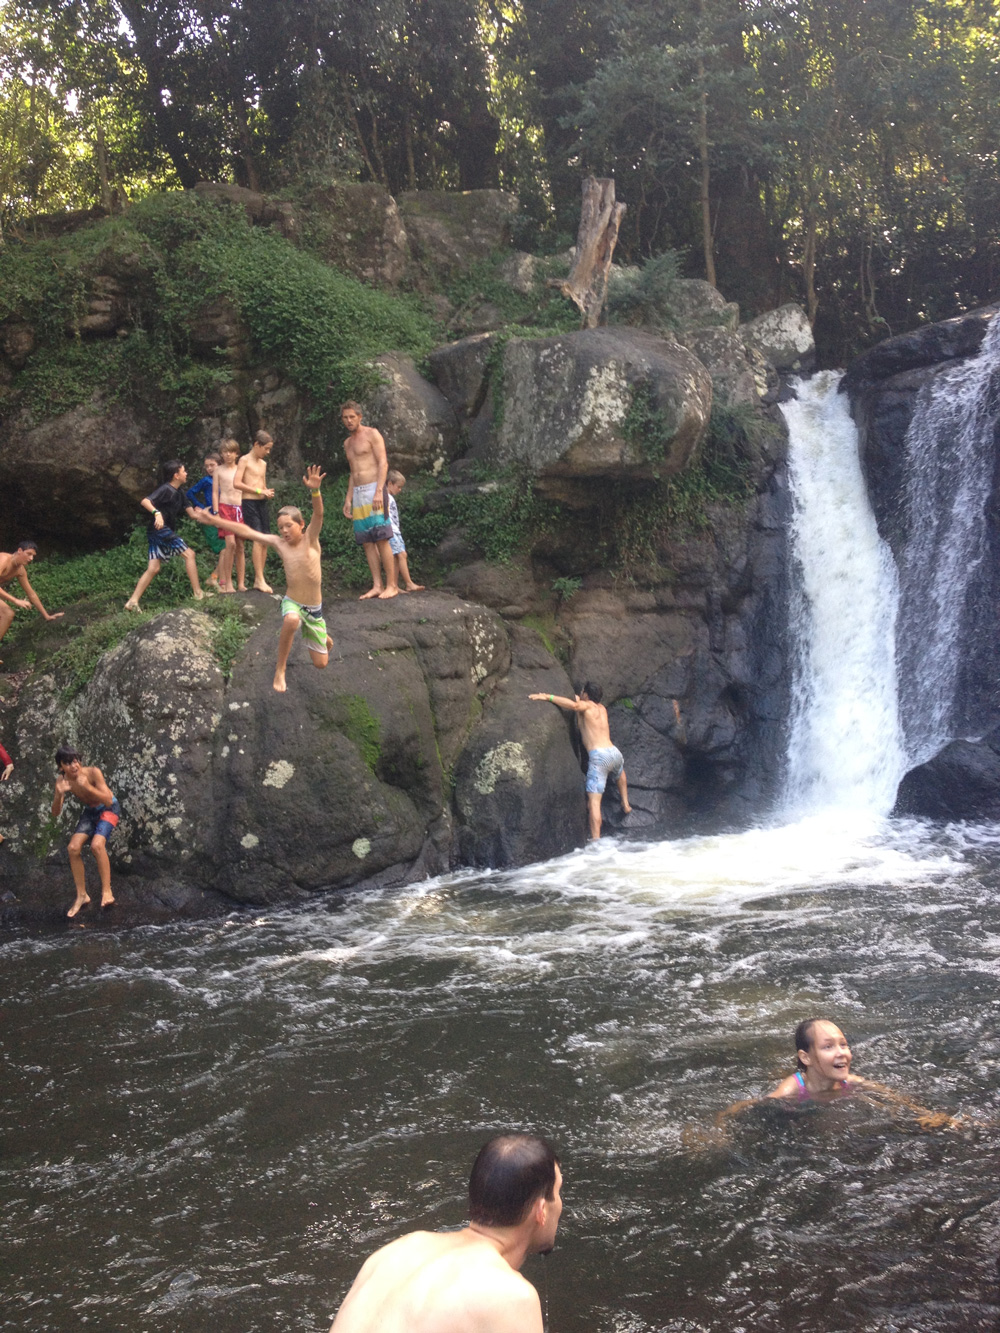 Uncle-Project-Byron-Bay-Camp-2015-03-28-11.03.40